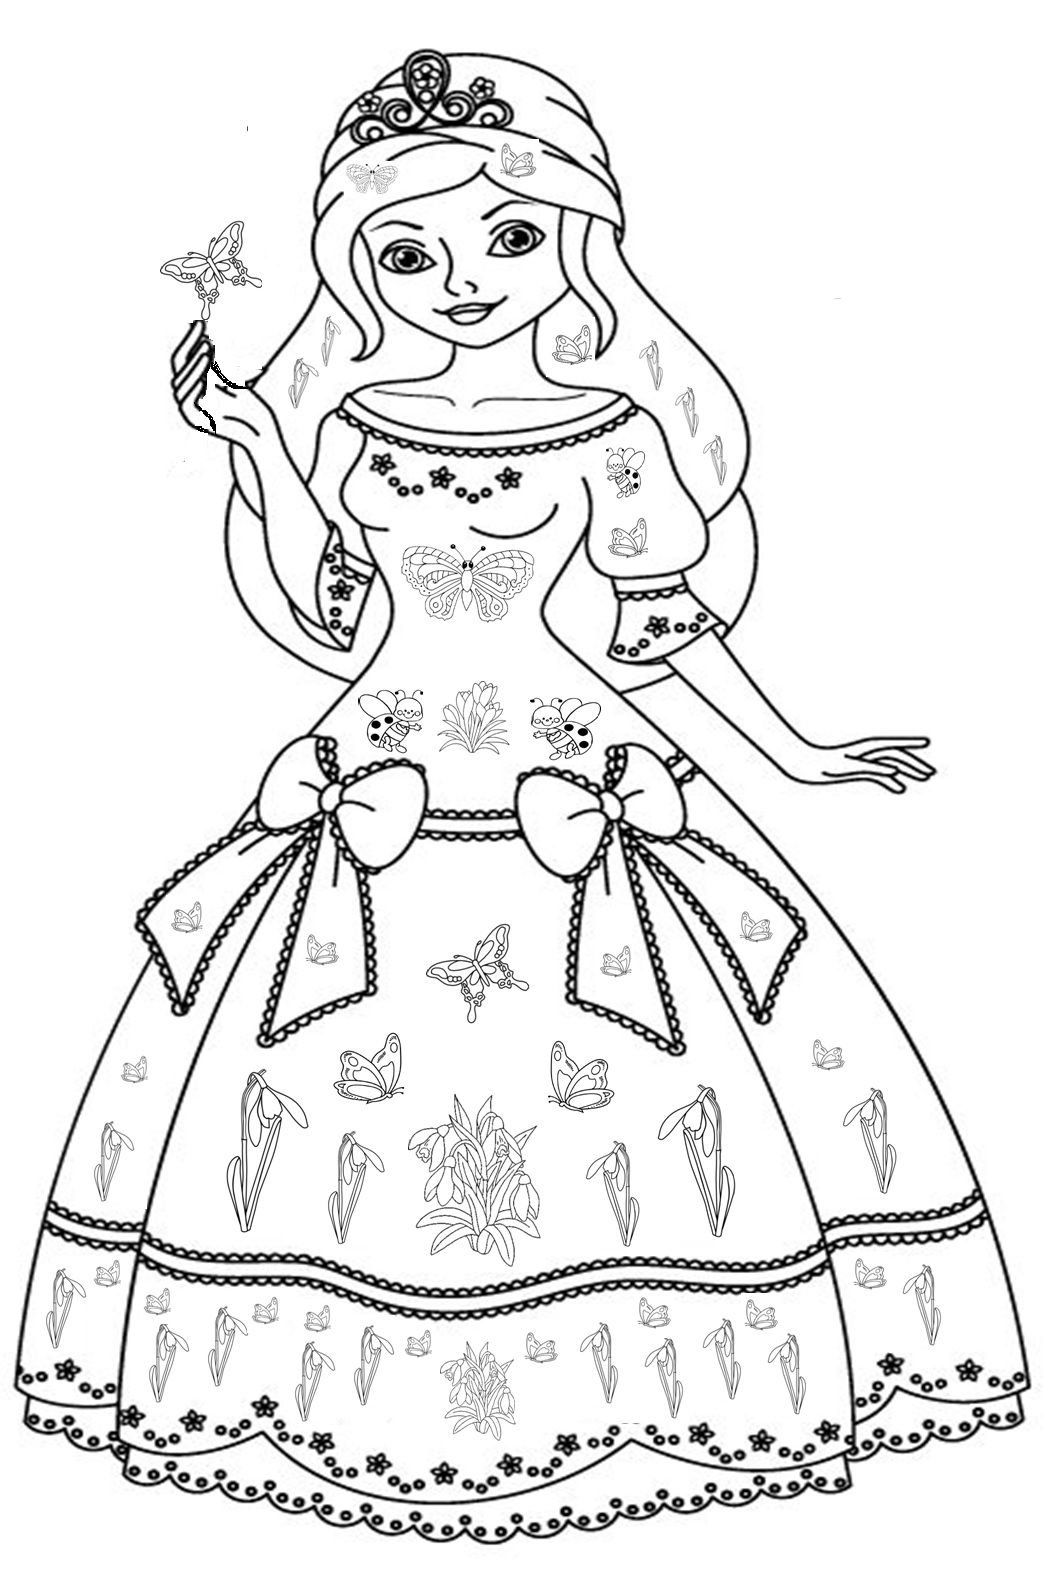 Zâna Primăvara Princess Coloring Pages Princess Coloring